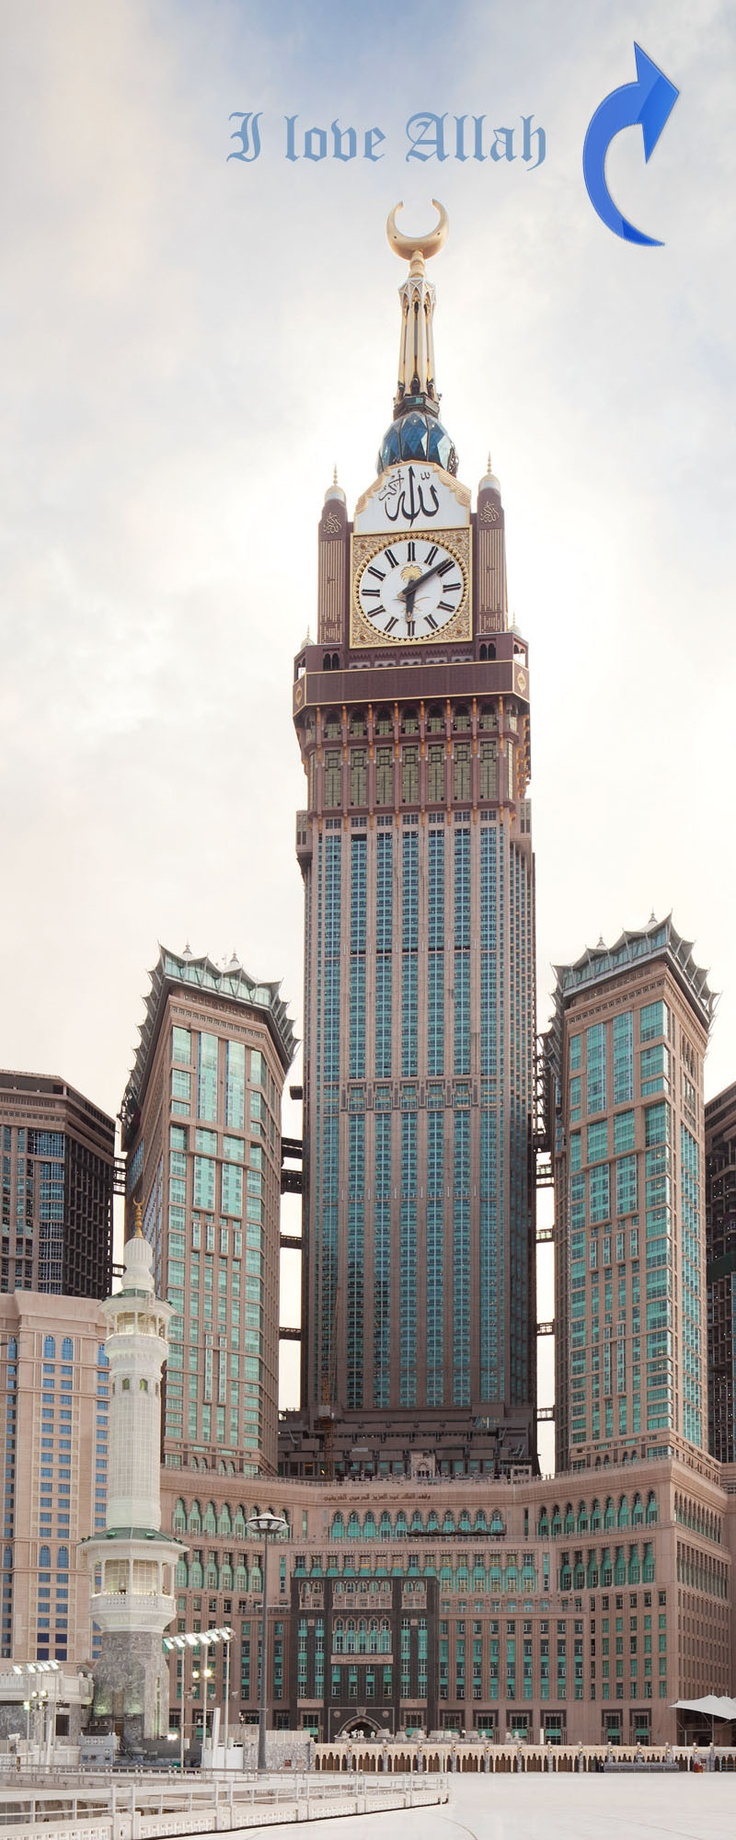 I love Allah. Abraj al Bait is the tallest clock tower in the world standing at 601m